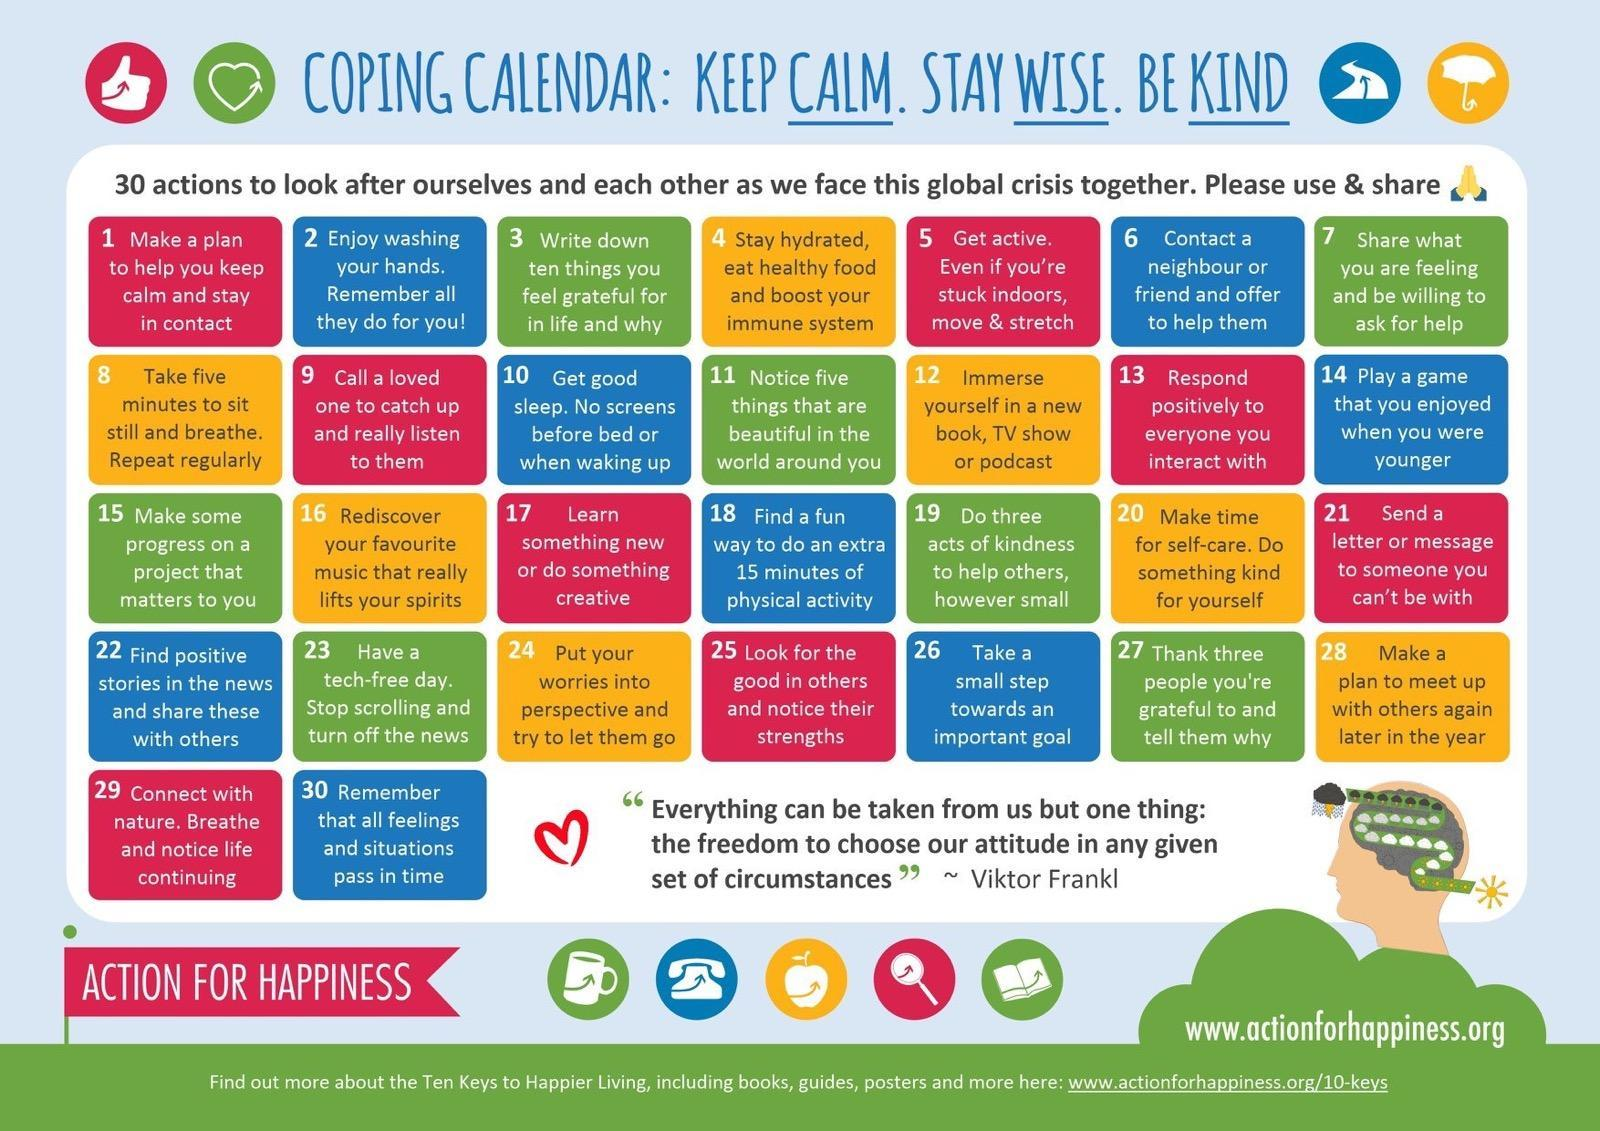 30 Actions for Self-Care and Coping